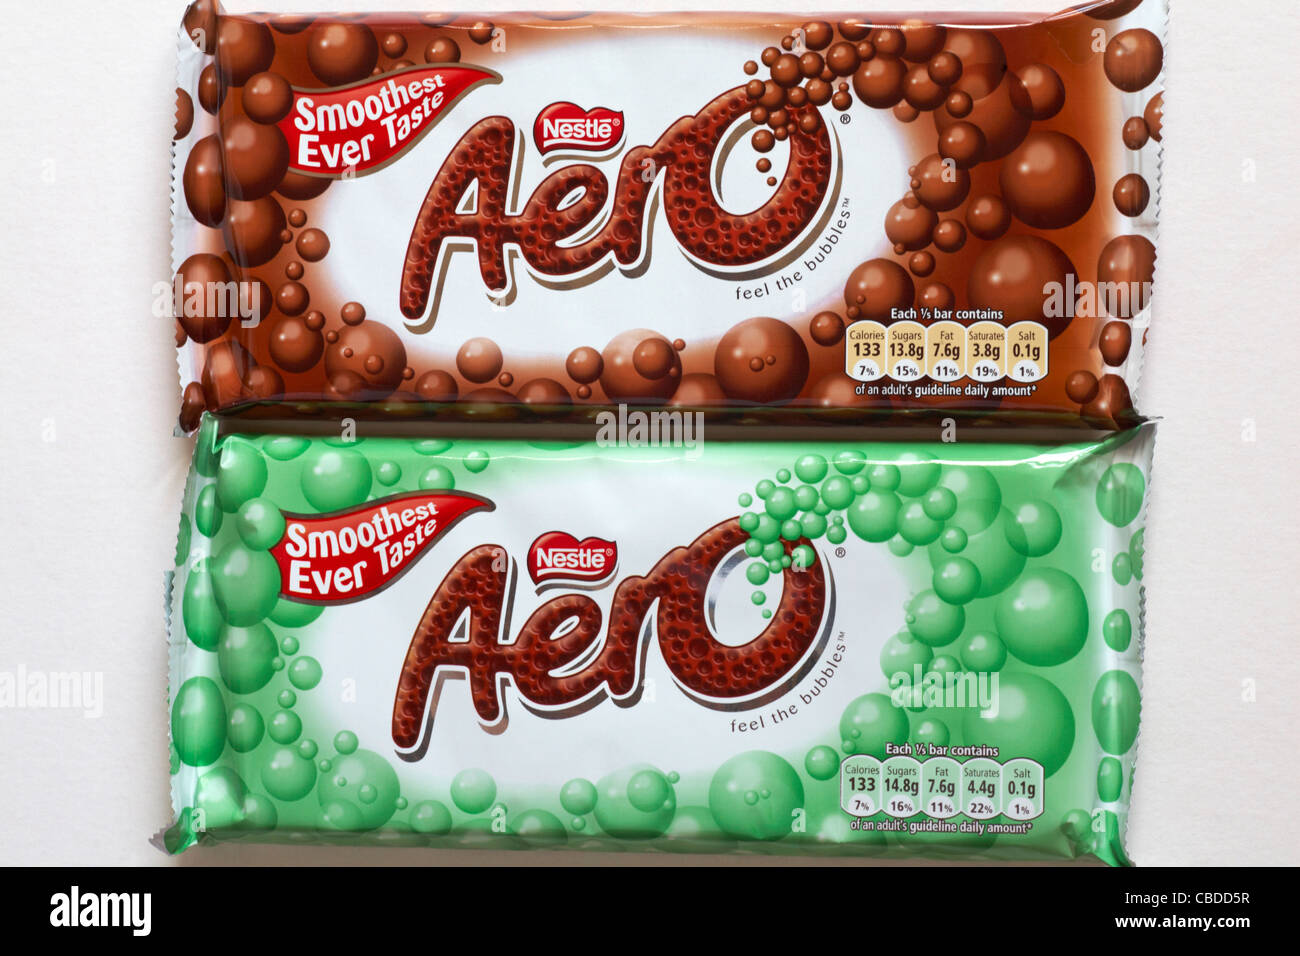 Two bars of Nestle Aero chocolate bars - one chocolate, one mint set against while background - Stock Image